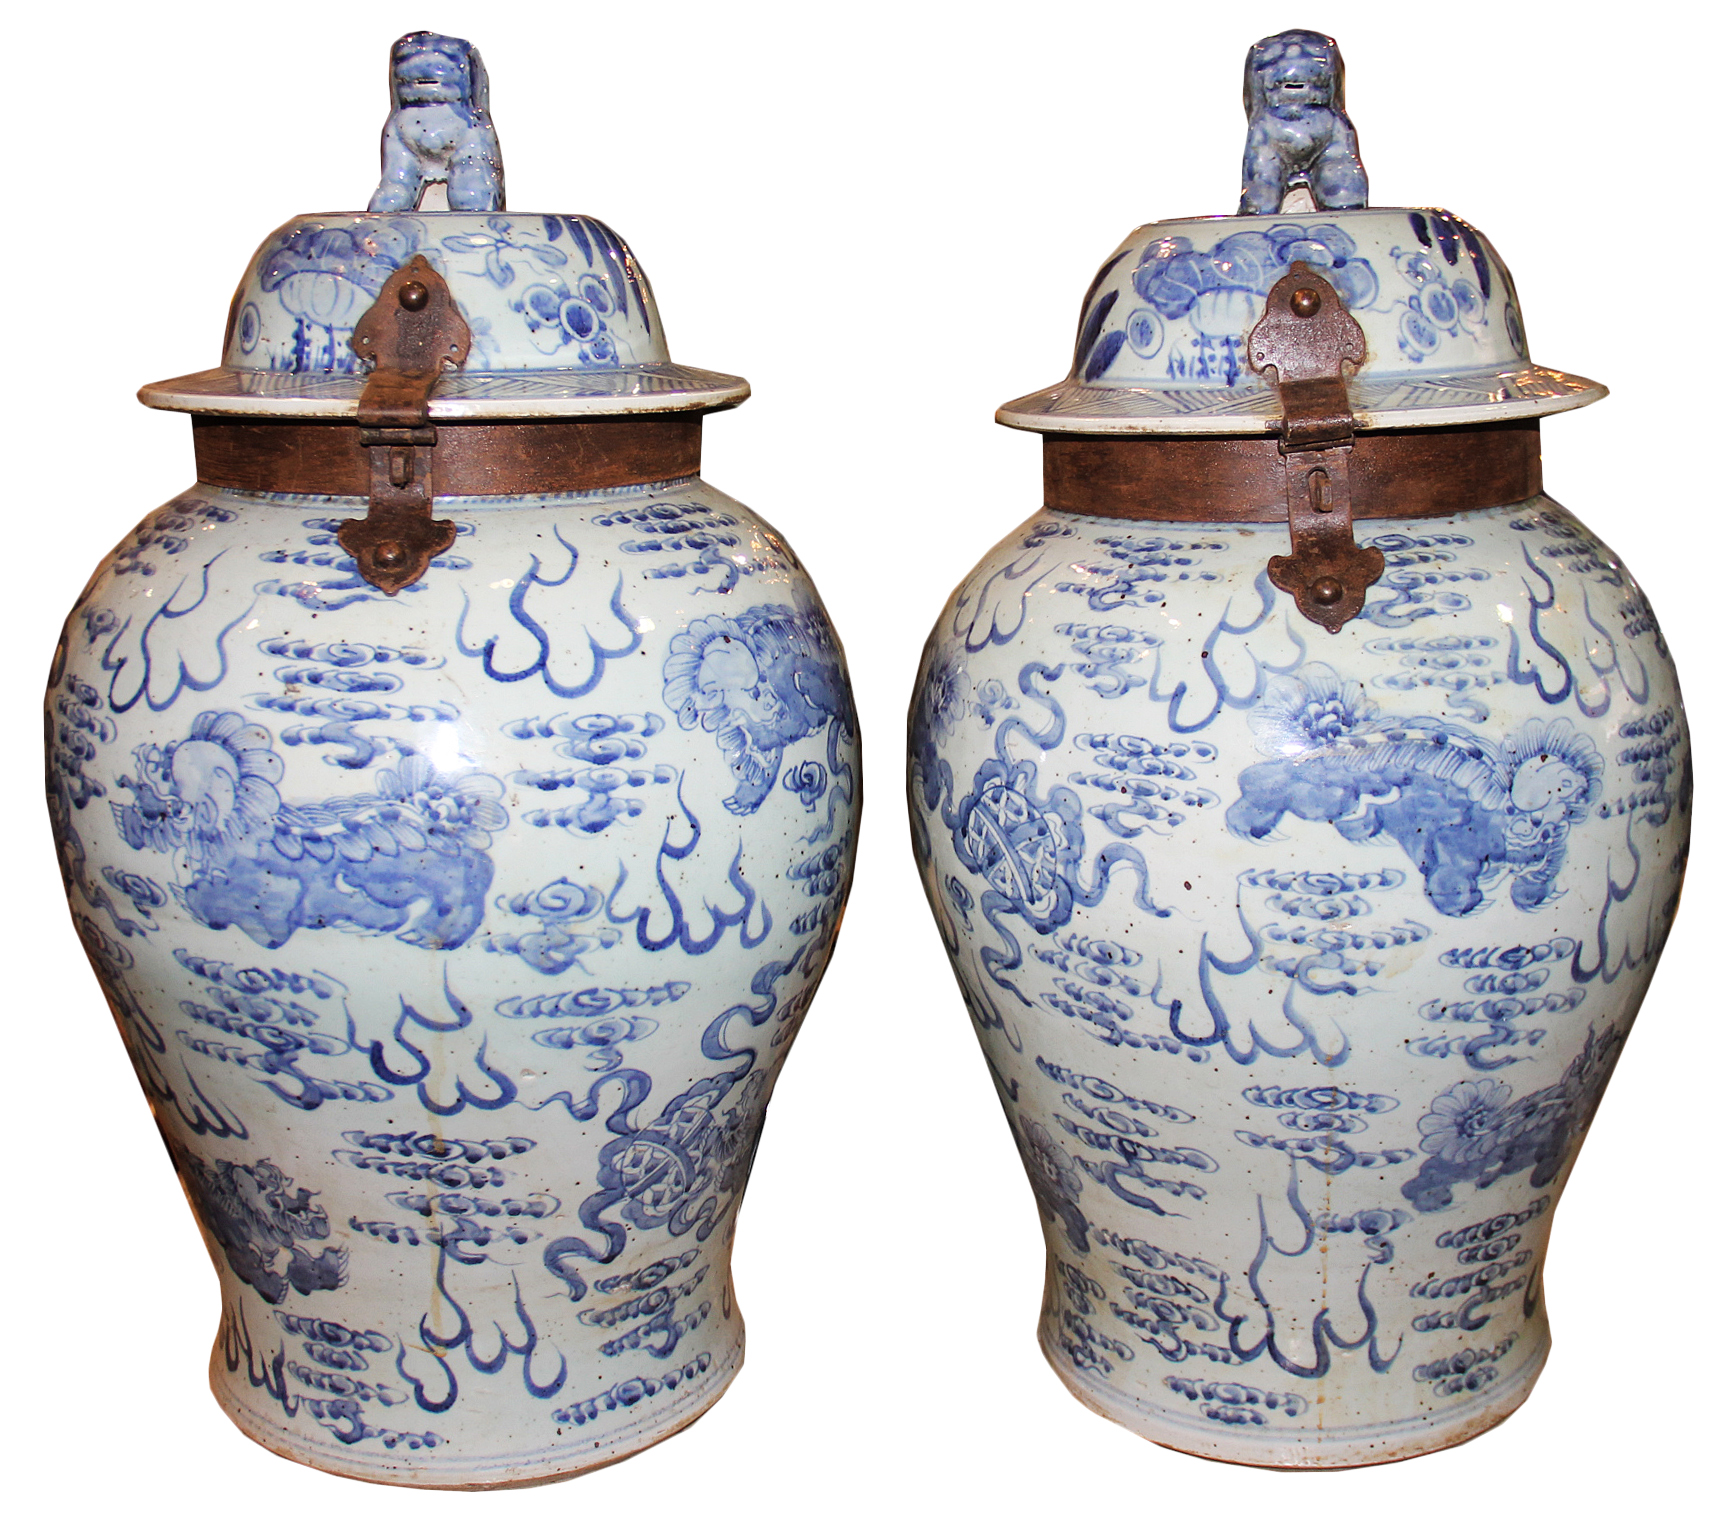 An Unusual Pair of 19th Century Chinese Export Hand Painted Porcelain Jars No. 4482